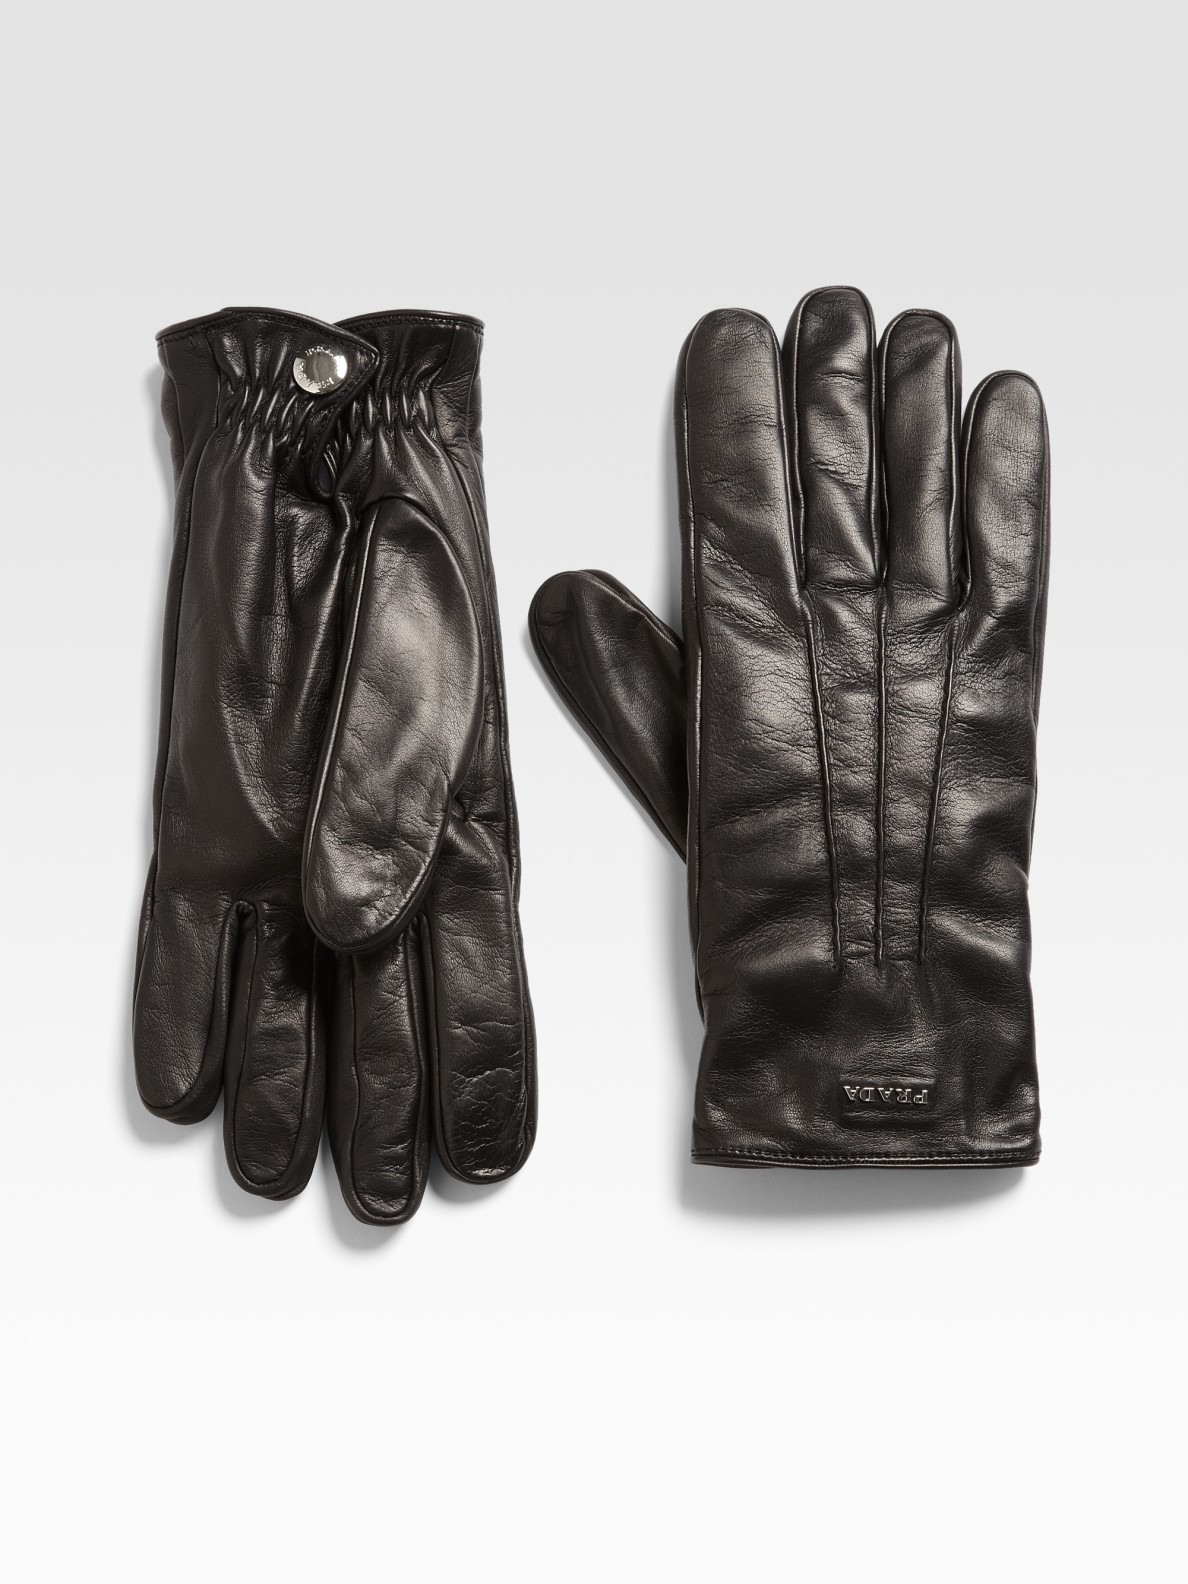 Prada mens leather gloves - Gallery Previously Sold At Saks Fifth Avenue Men S Leather Gloves